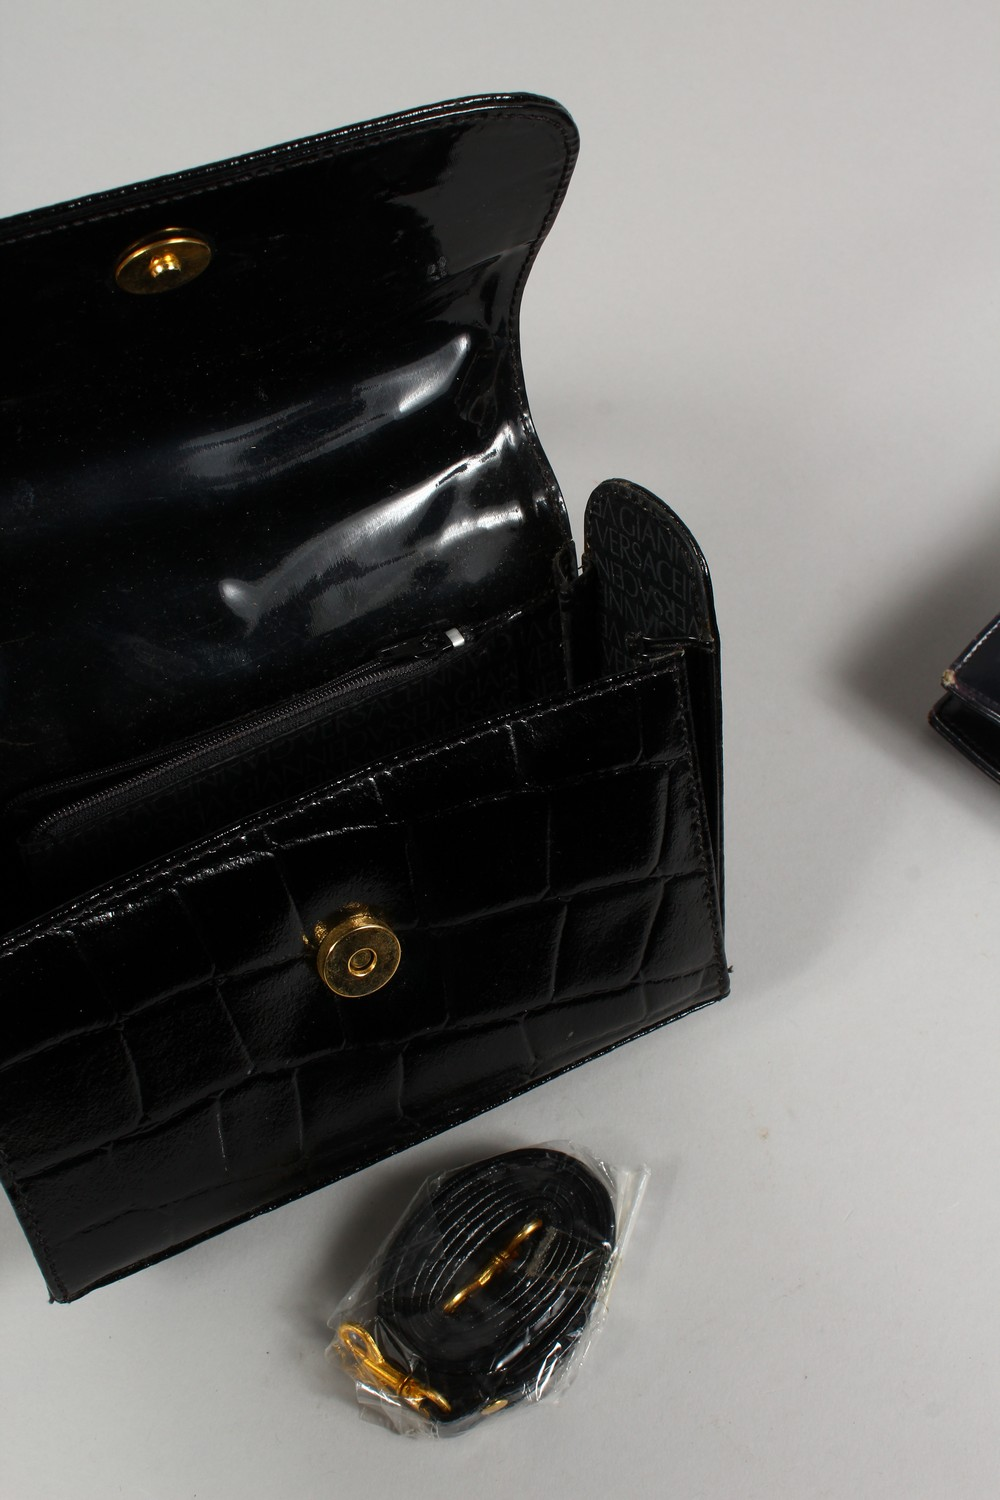 ALGERNON ASPREY, a ladies black leather handbag, and two other bags. - Image 11 of 16